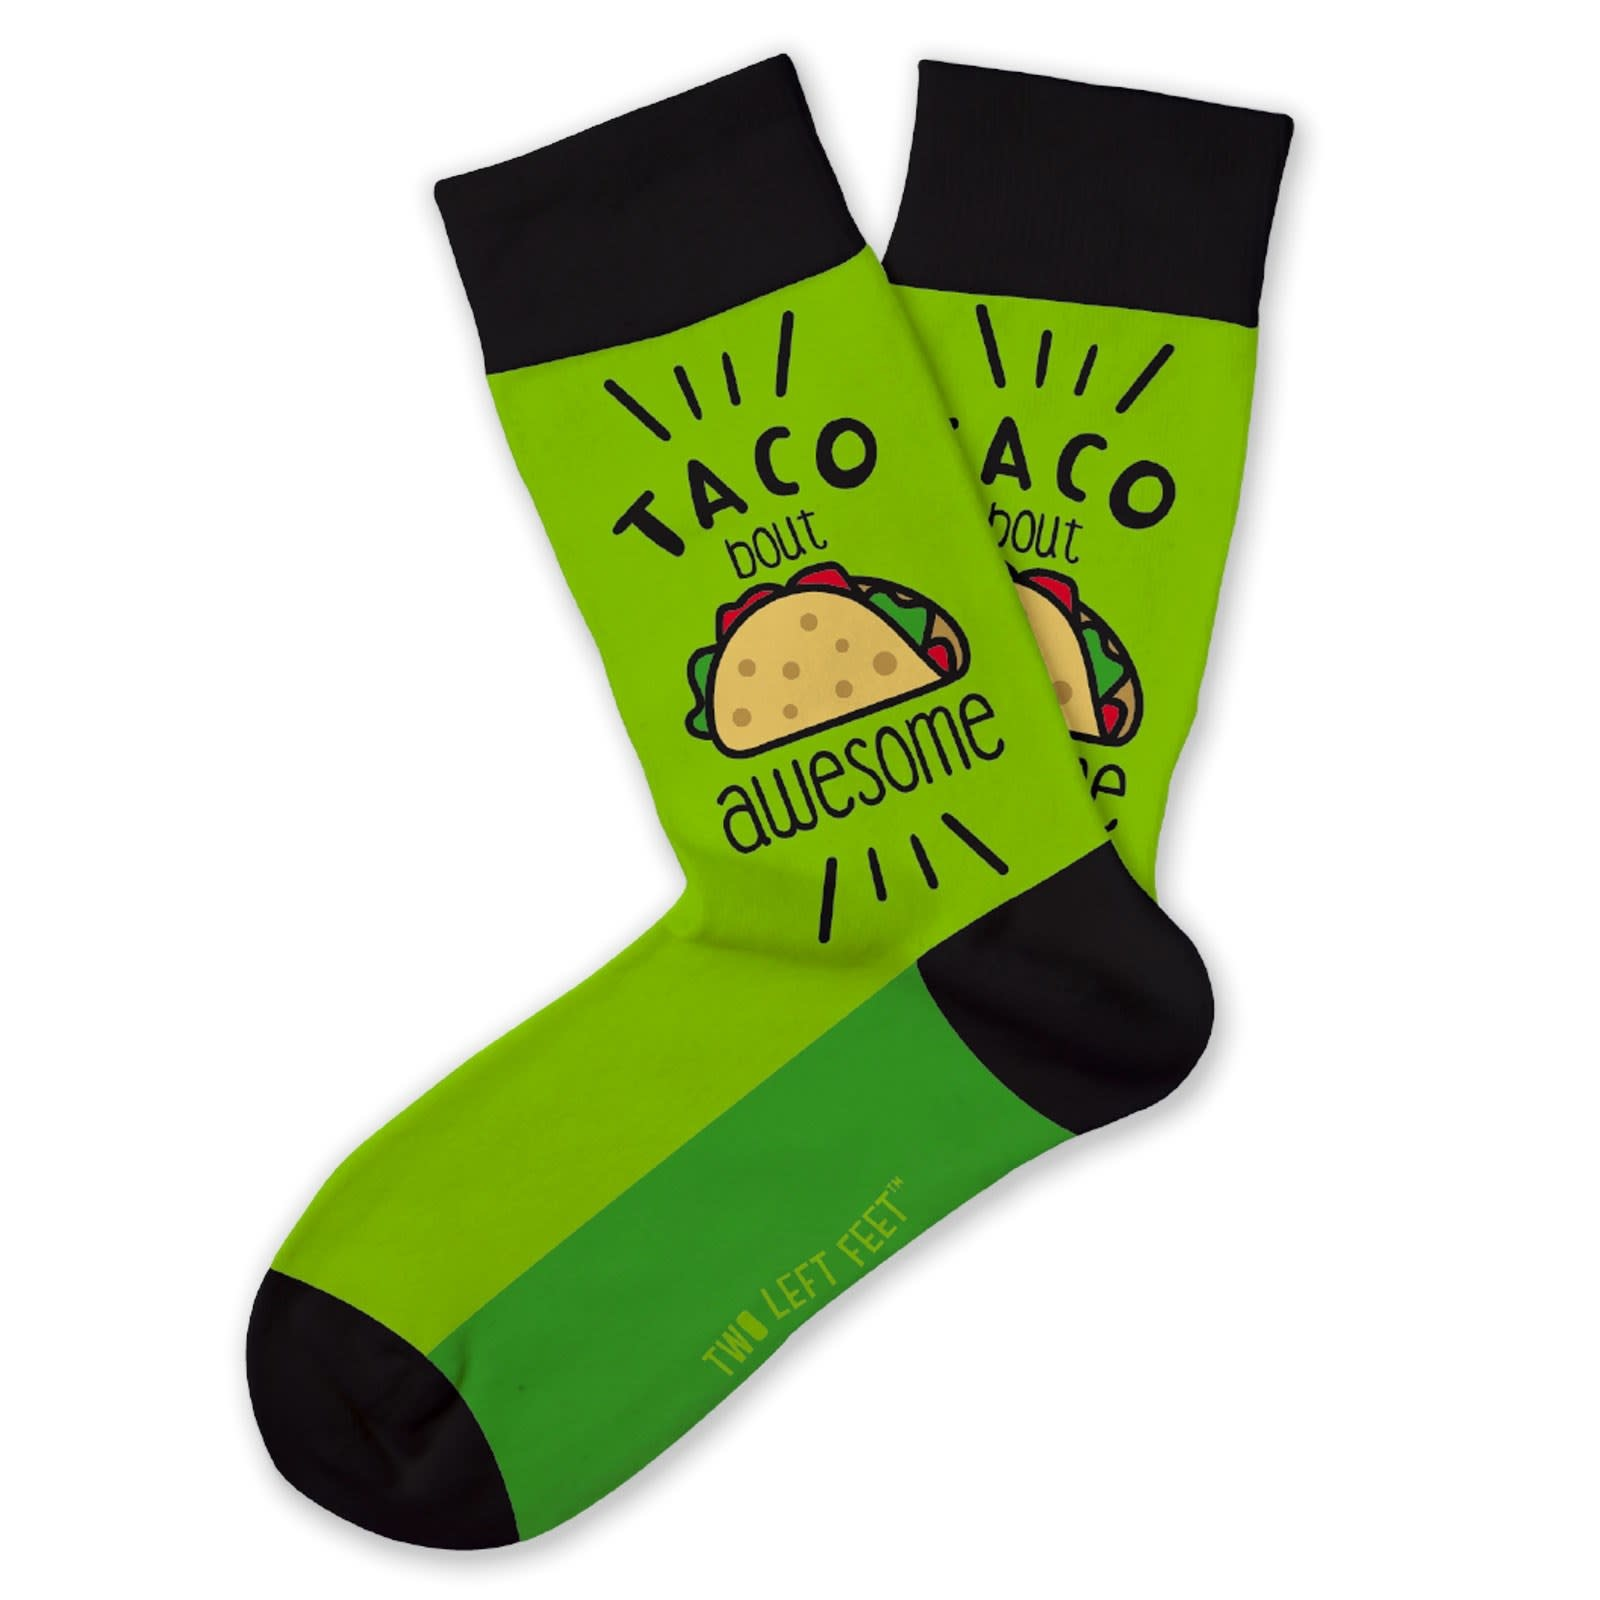 DM MERCHANDISING Taco Bout Awesome Socks - Ages 3-6